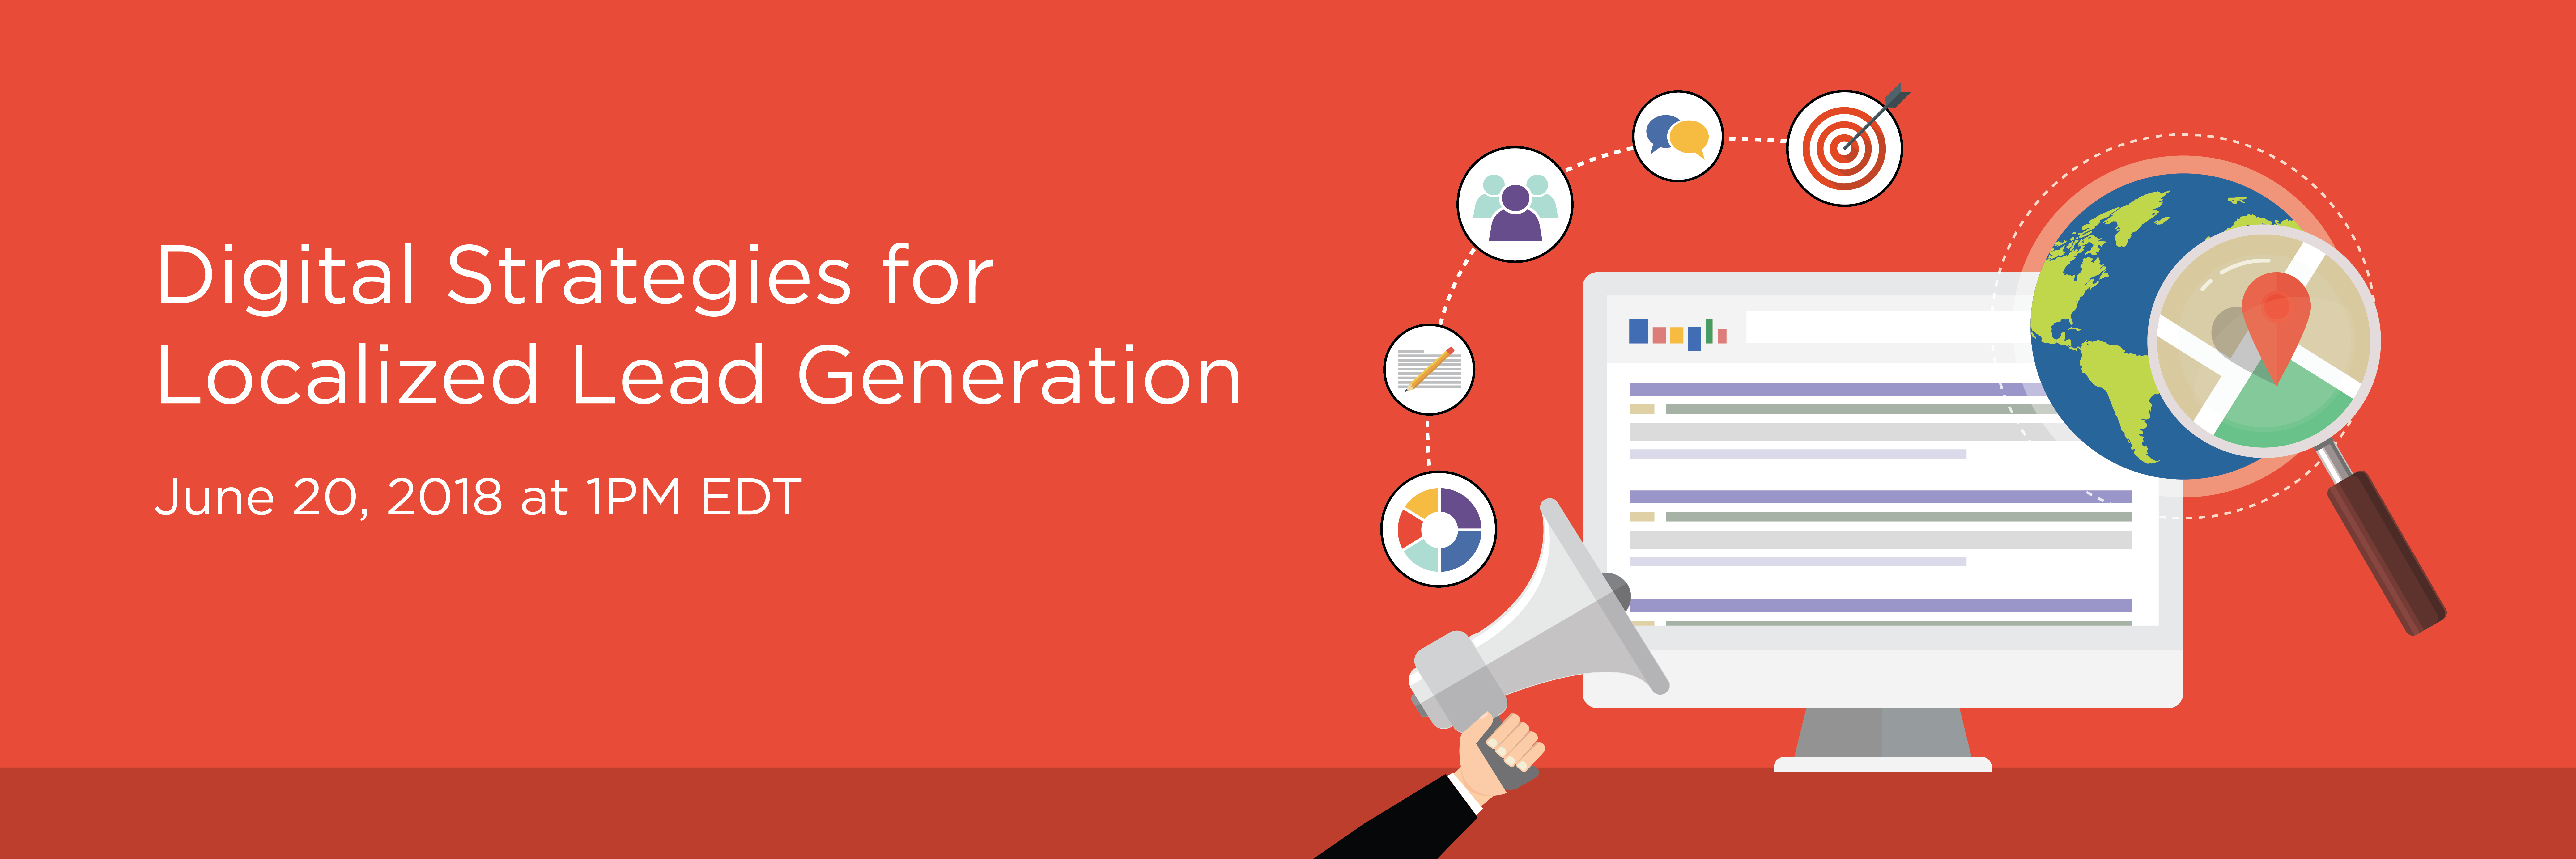 Localized Lead Generation